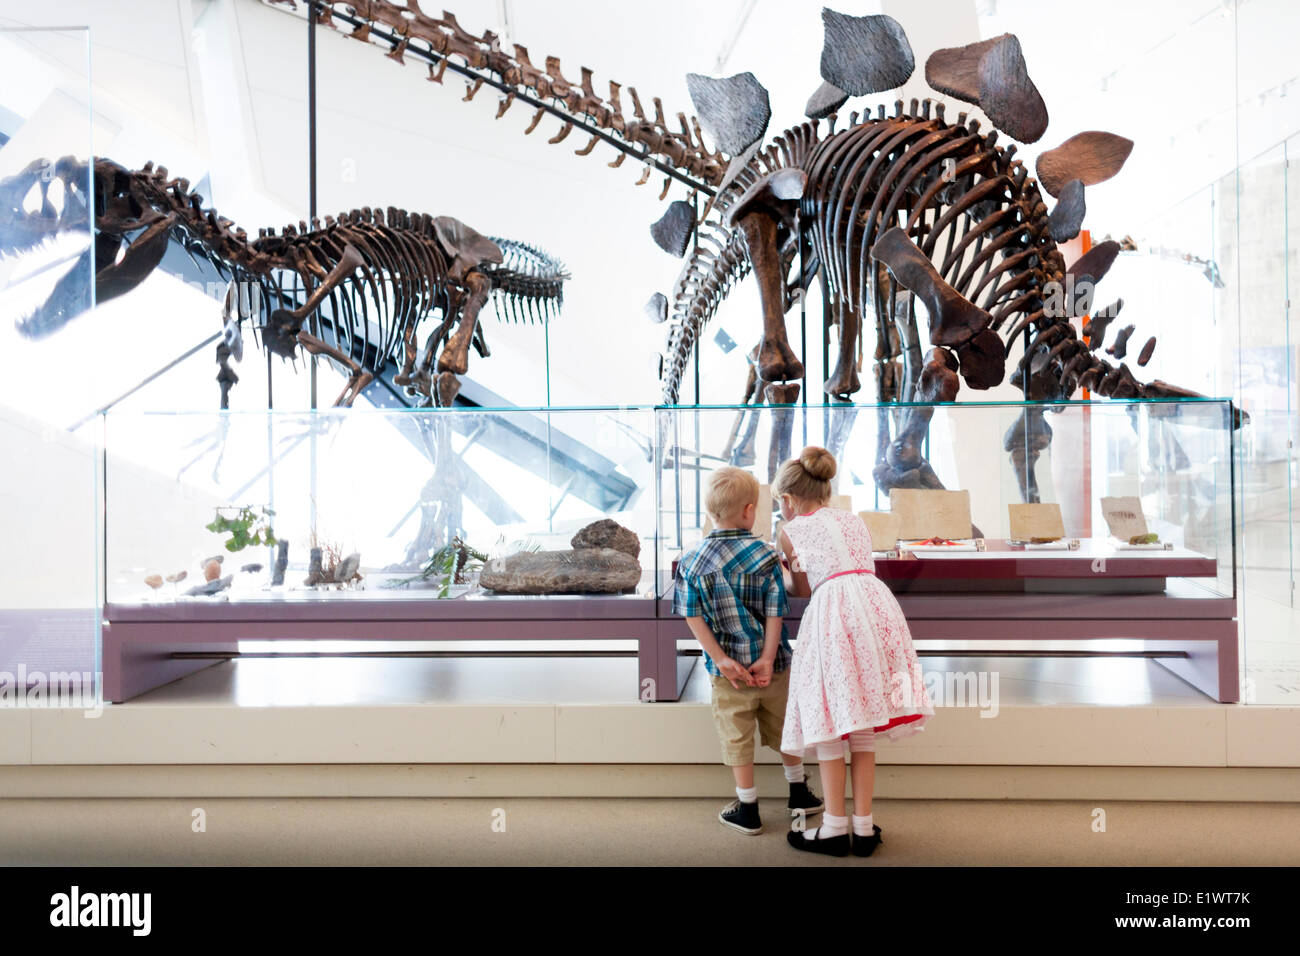 Girl and boy looking at dinosaur fossils at Royal Ontario Museum, Toronto, Ontario, Canada - Stock Image